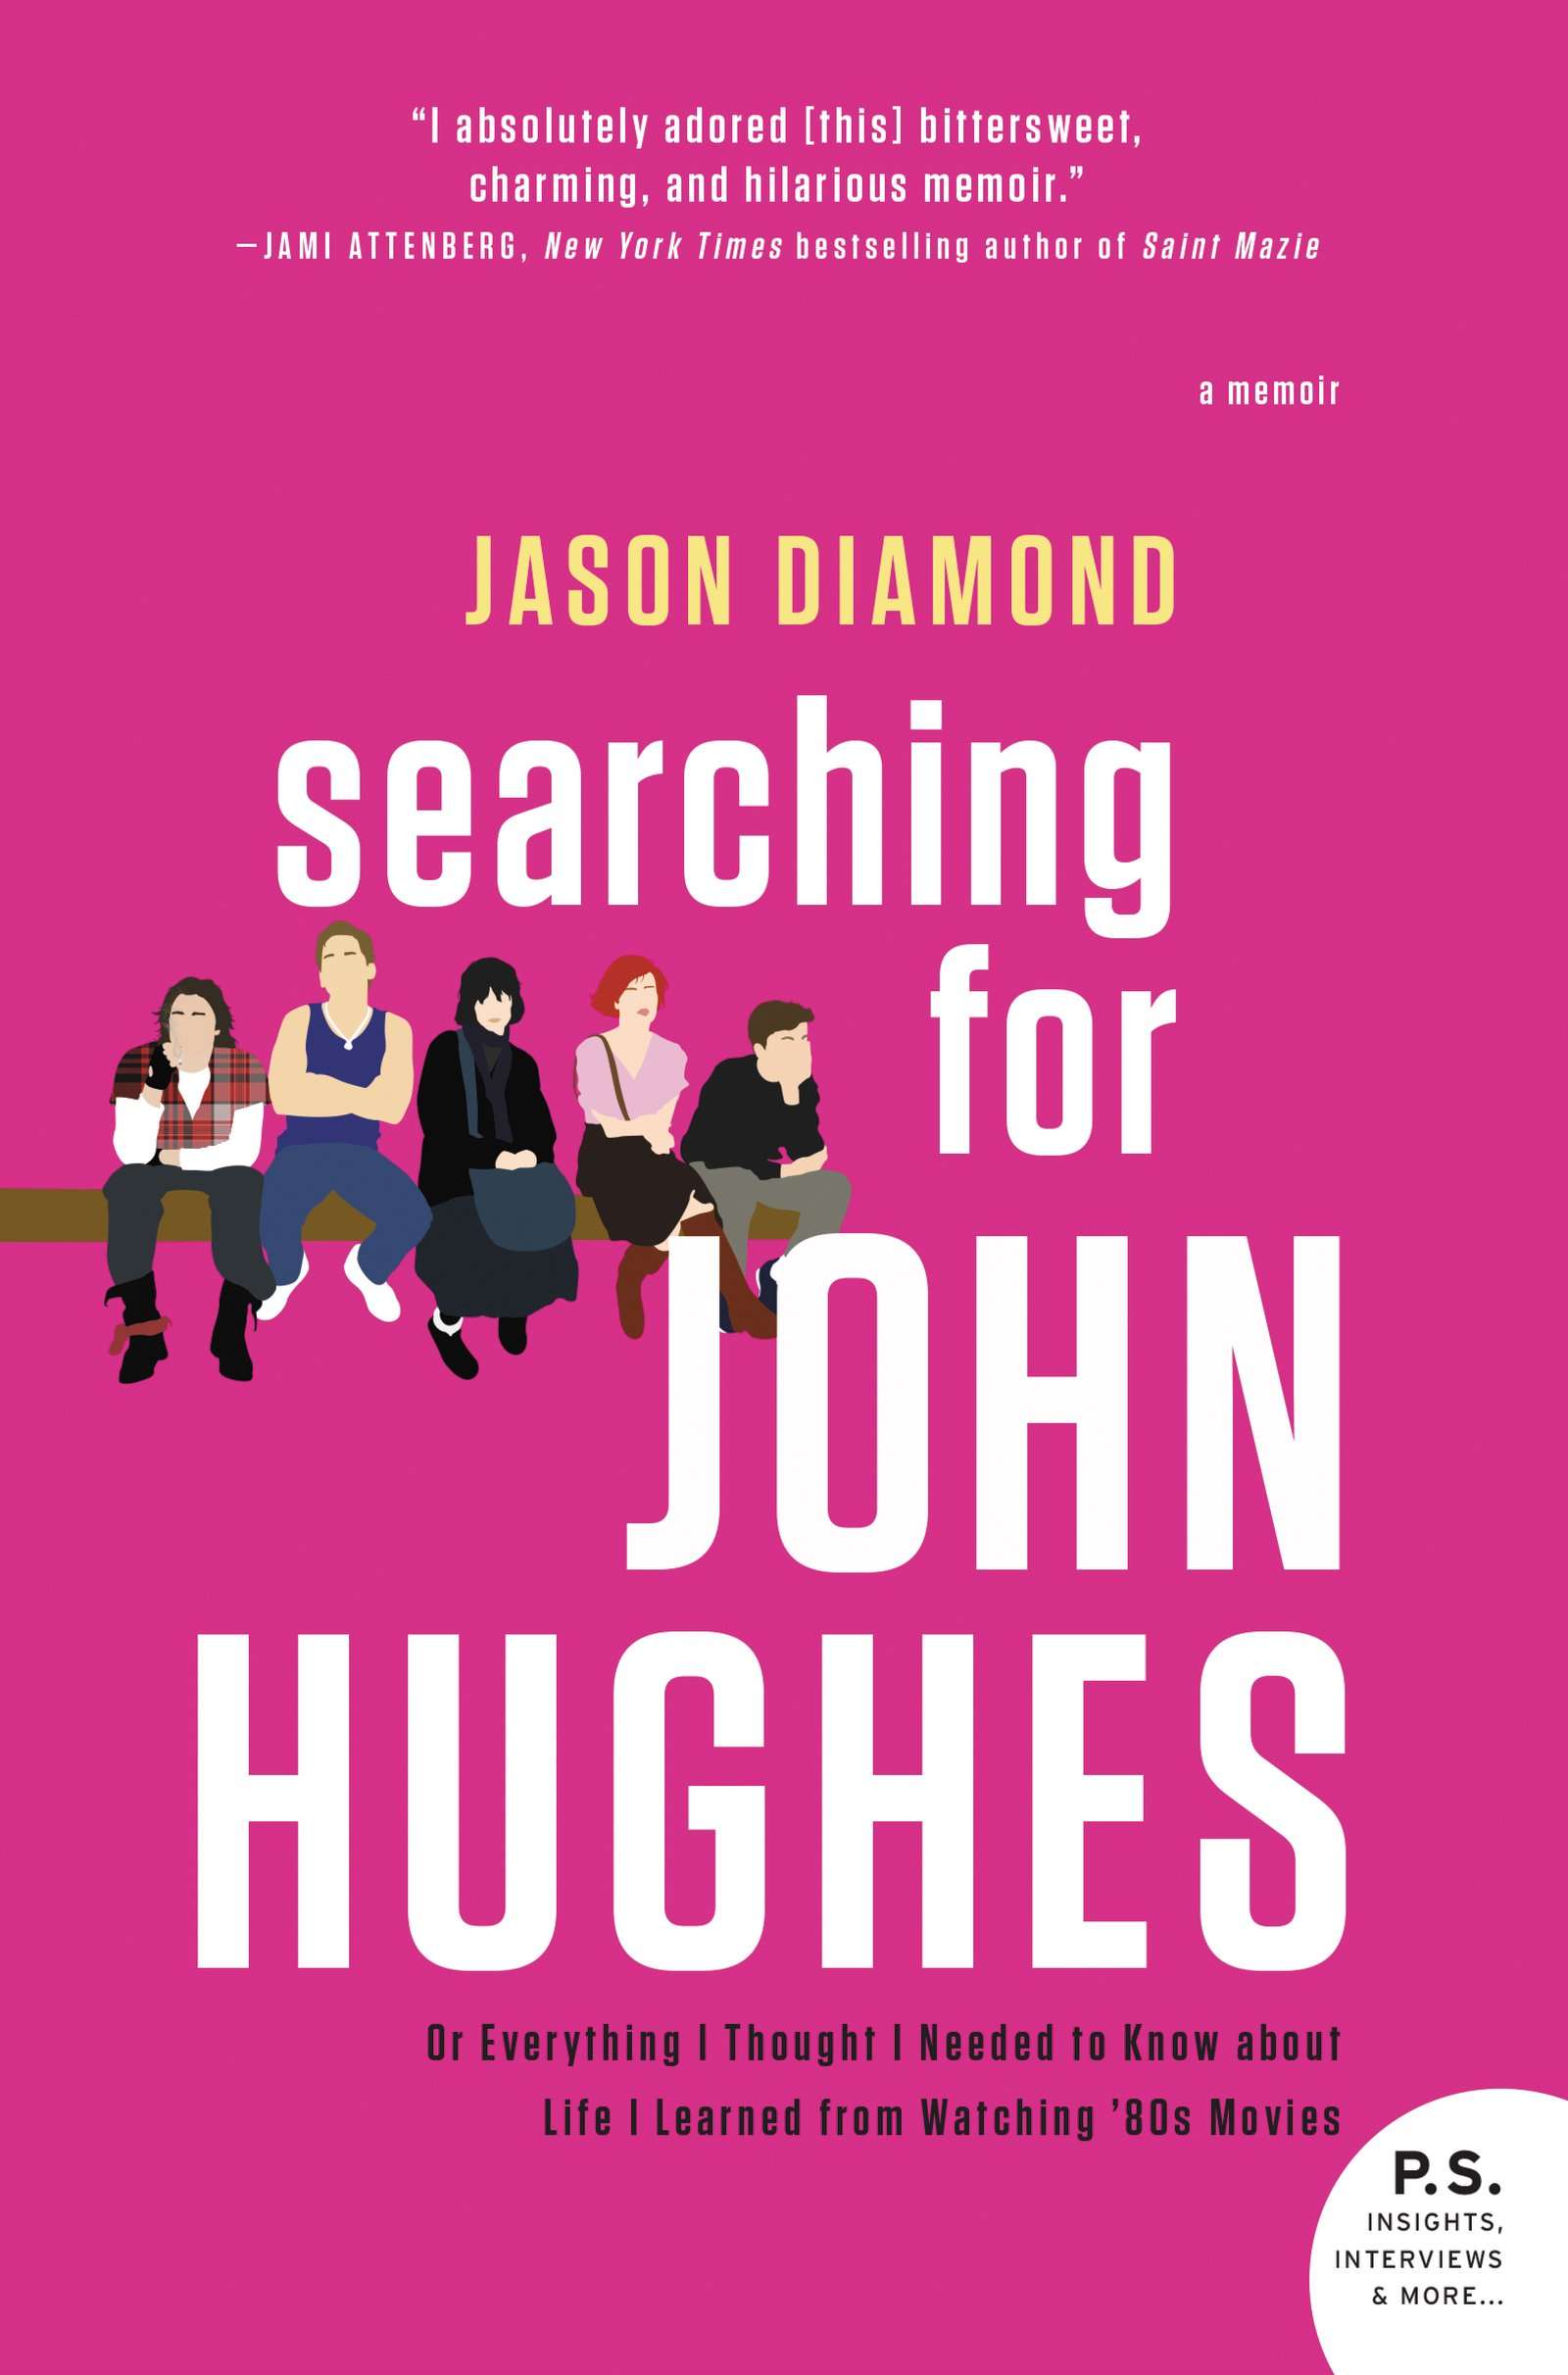 Searching for John Hughes: Or Everything I Thought I Needed to Know about Life I Learned from Watching '80s Movies